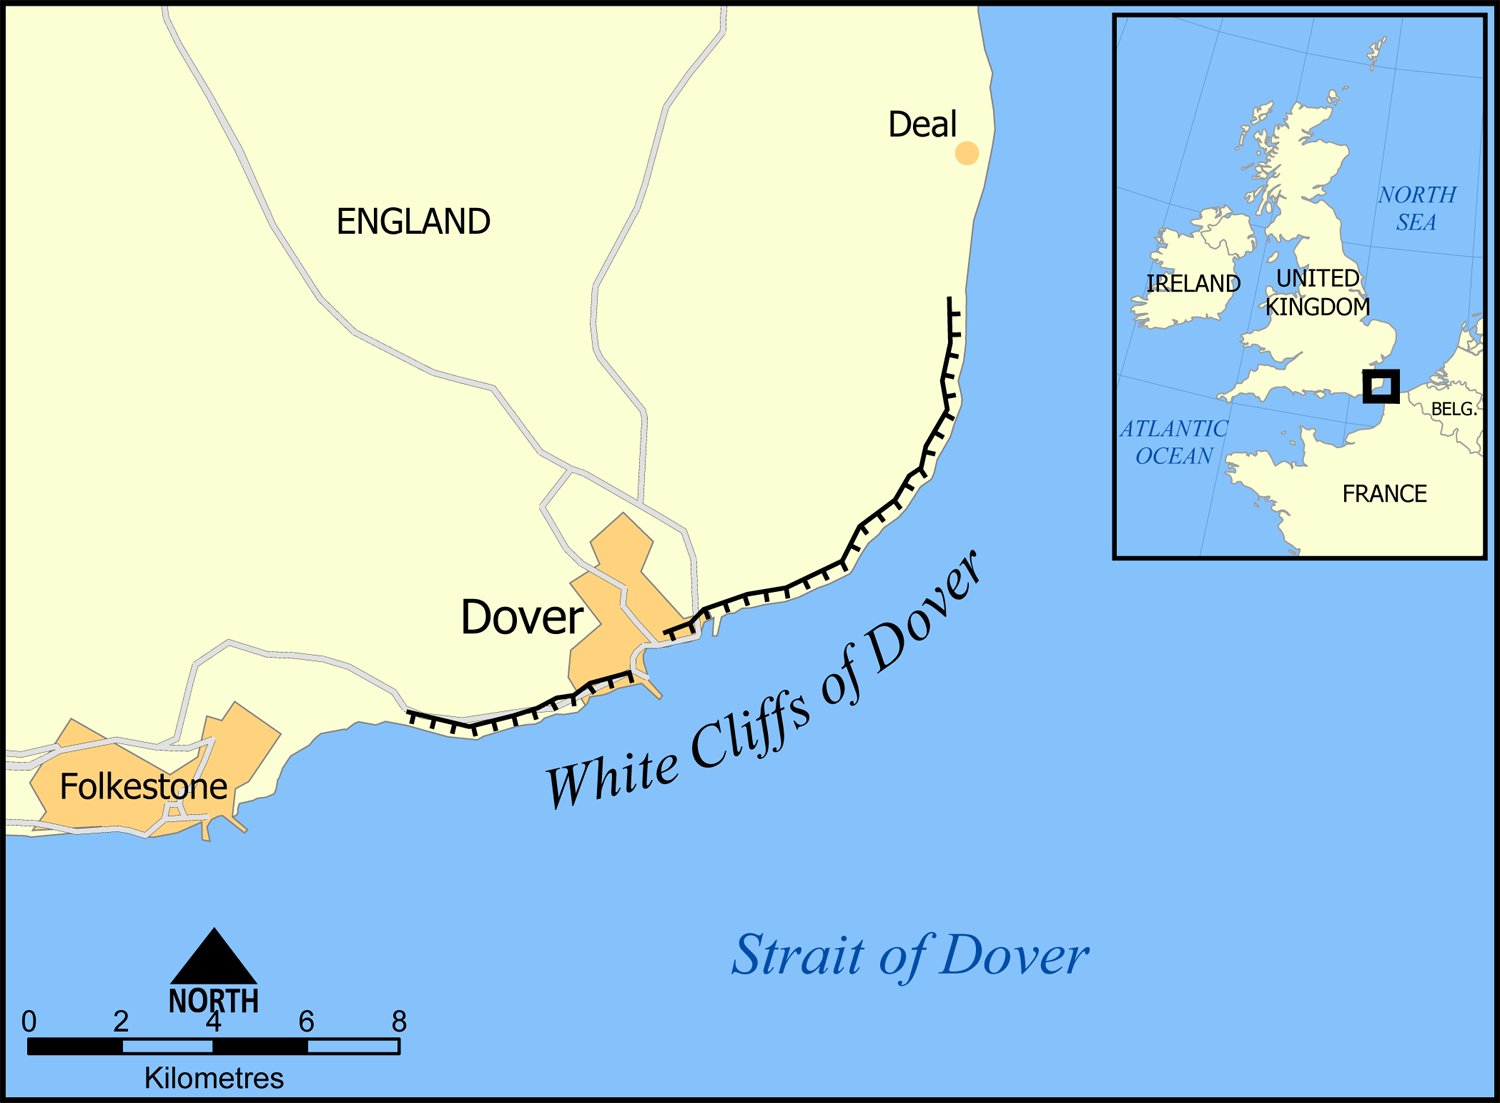 Map of the southeastern British coastline showing the extent of the White Cliffs of Dover